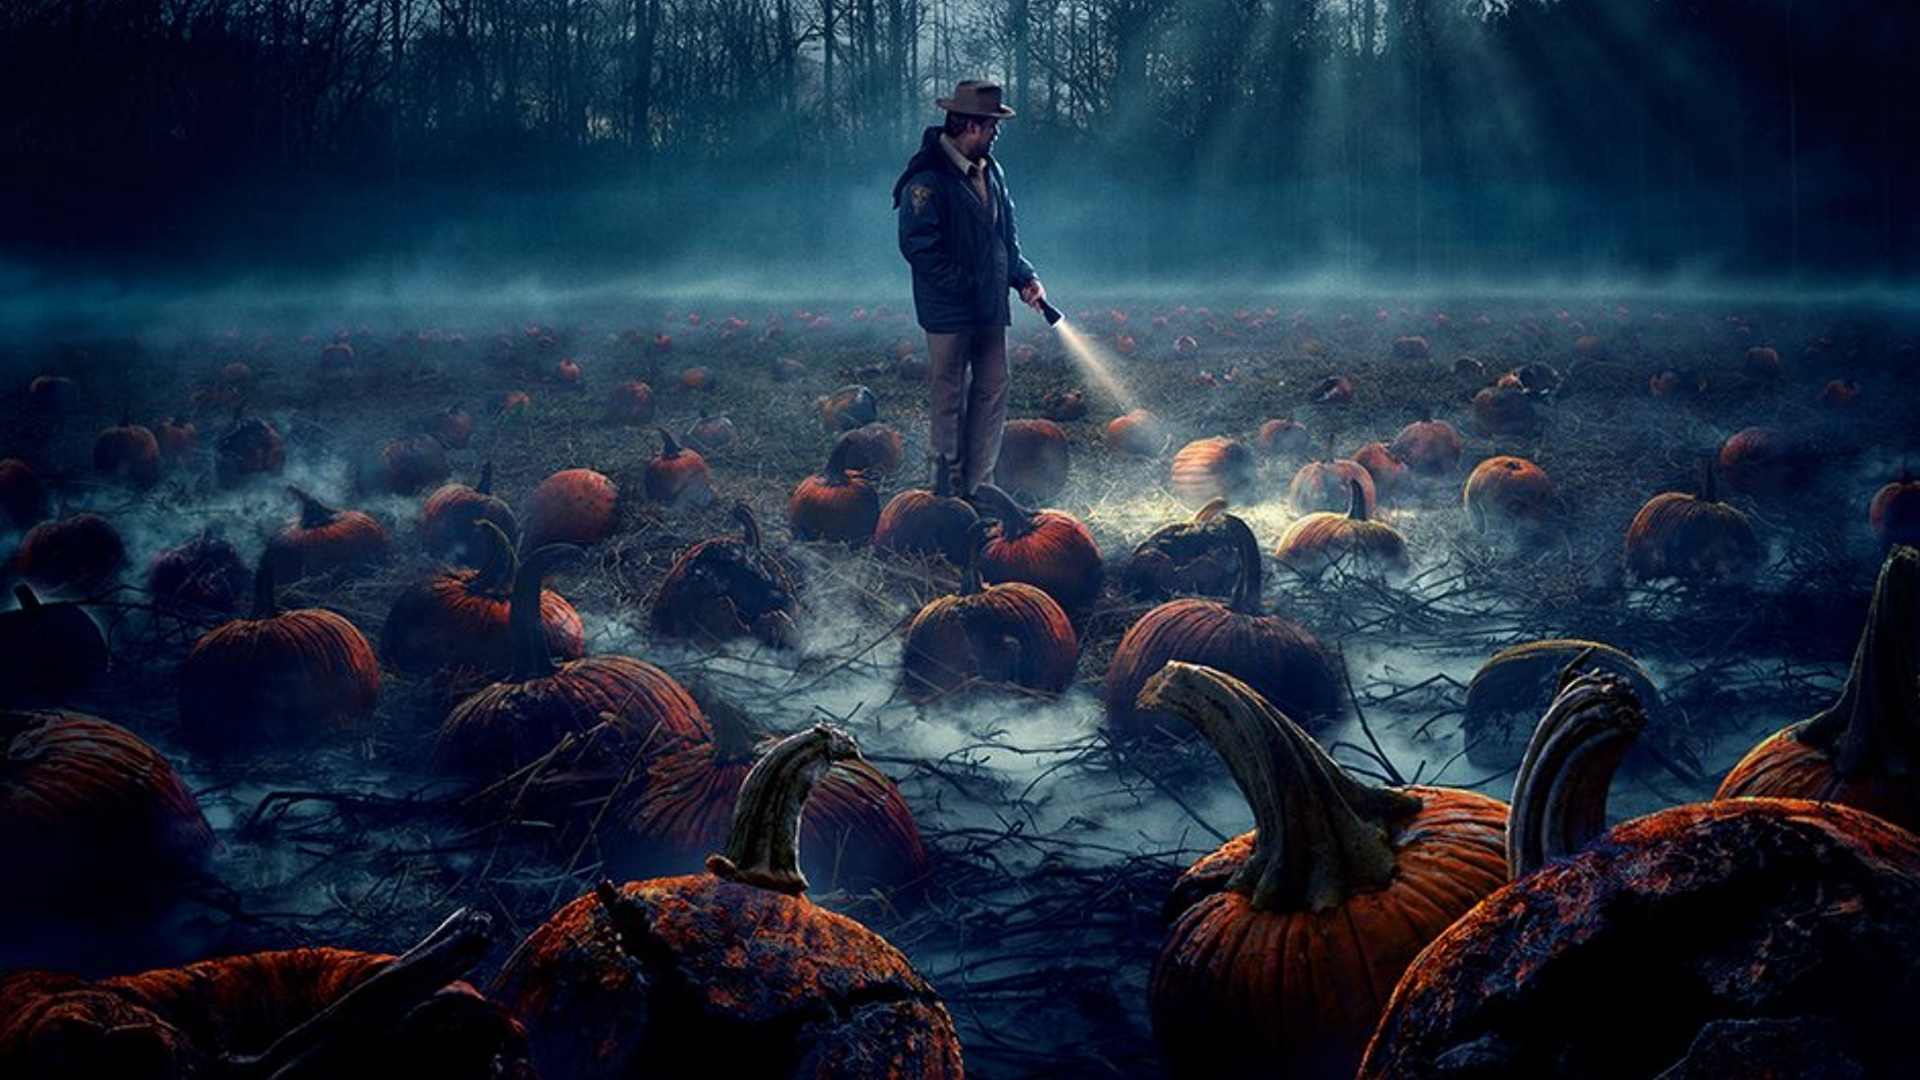 Fall Themed Wallpaper Stranger Things Season 2 Gets A Perfectly Cool Halloween